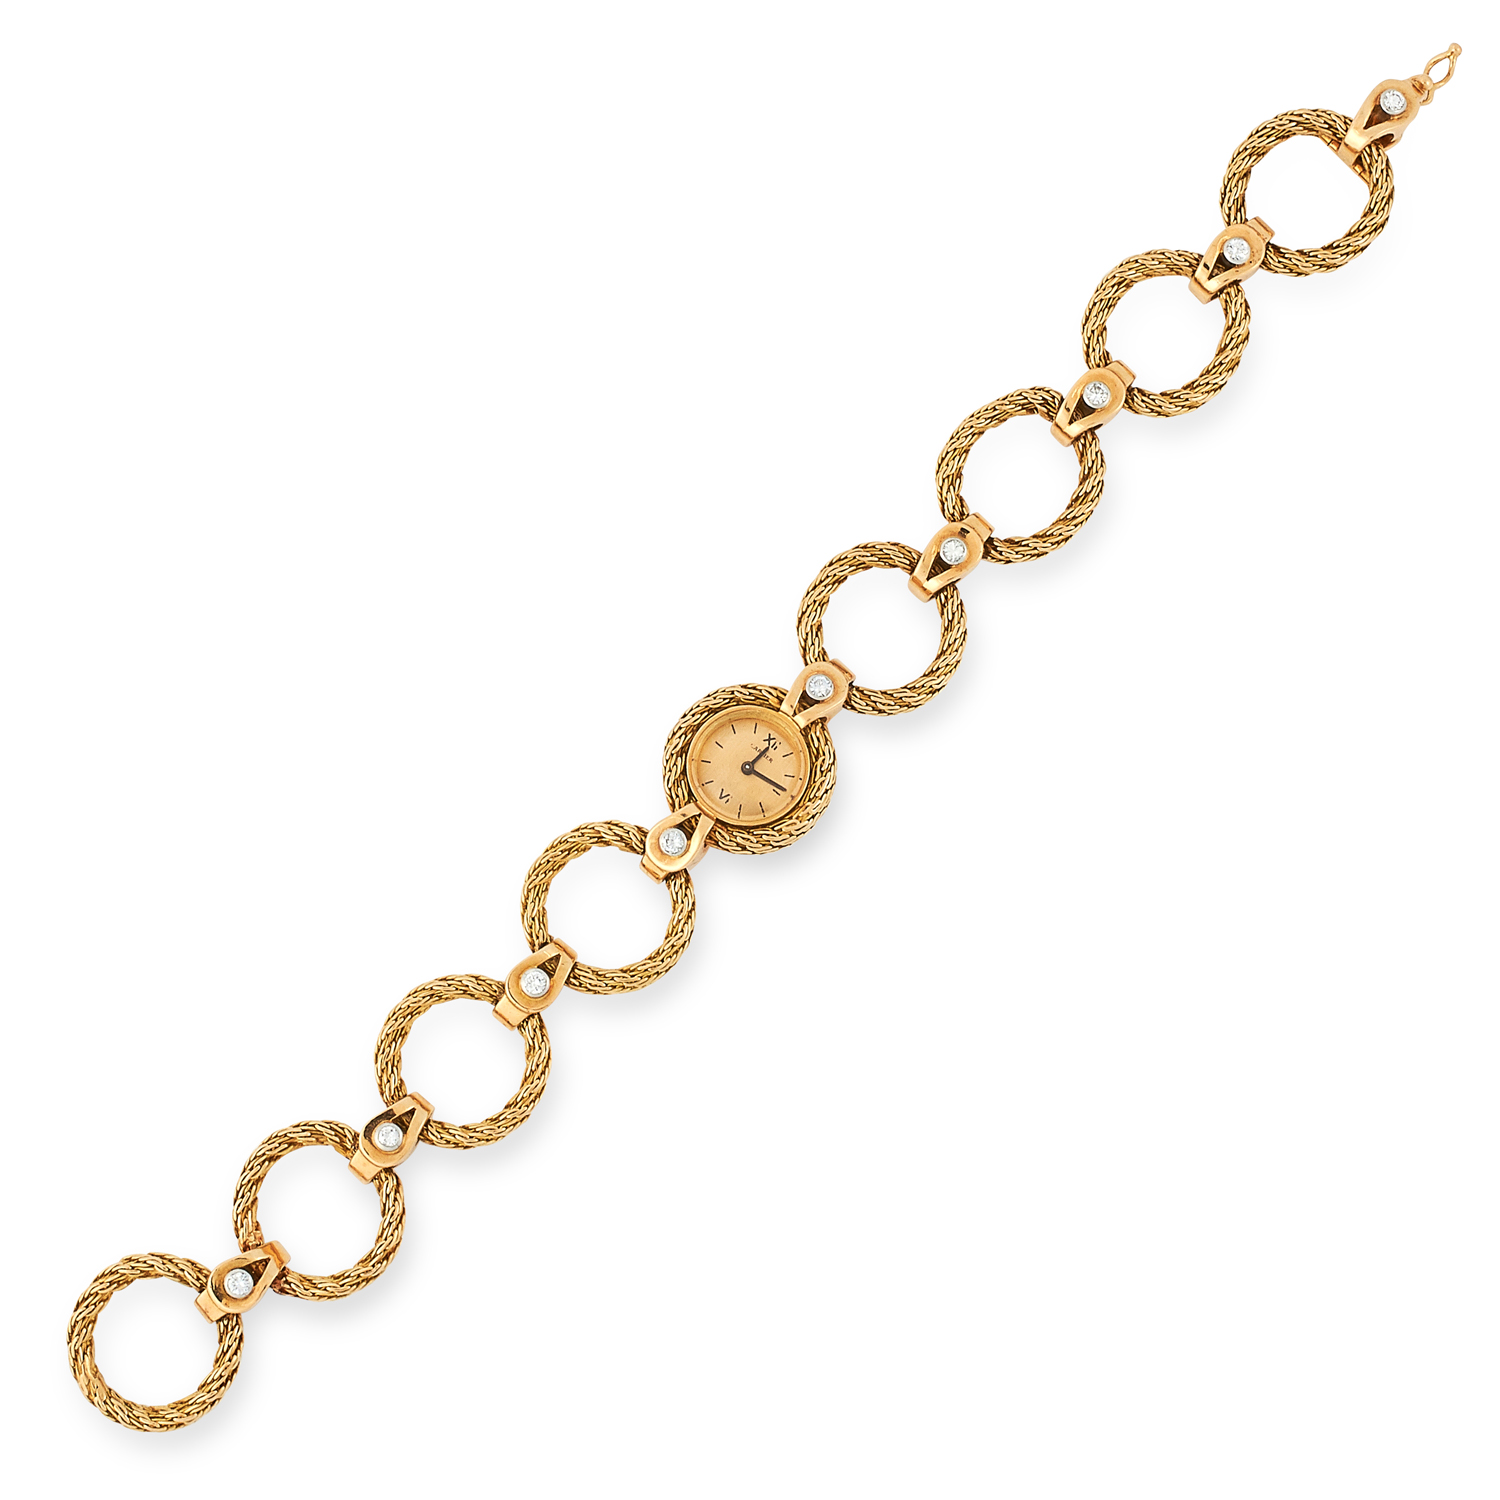 A VINTAGE LADIES DIAMOND WRISTWATCH, CARTIER comprising of textured gold hoop links set with round